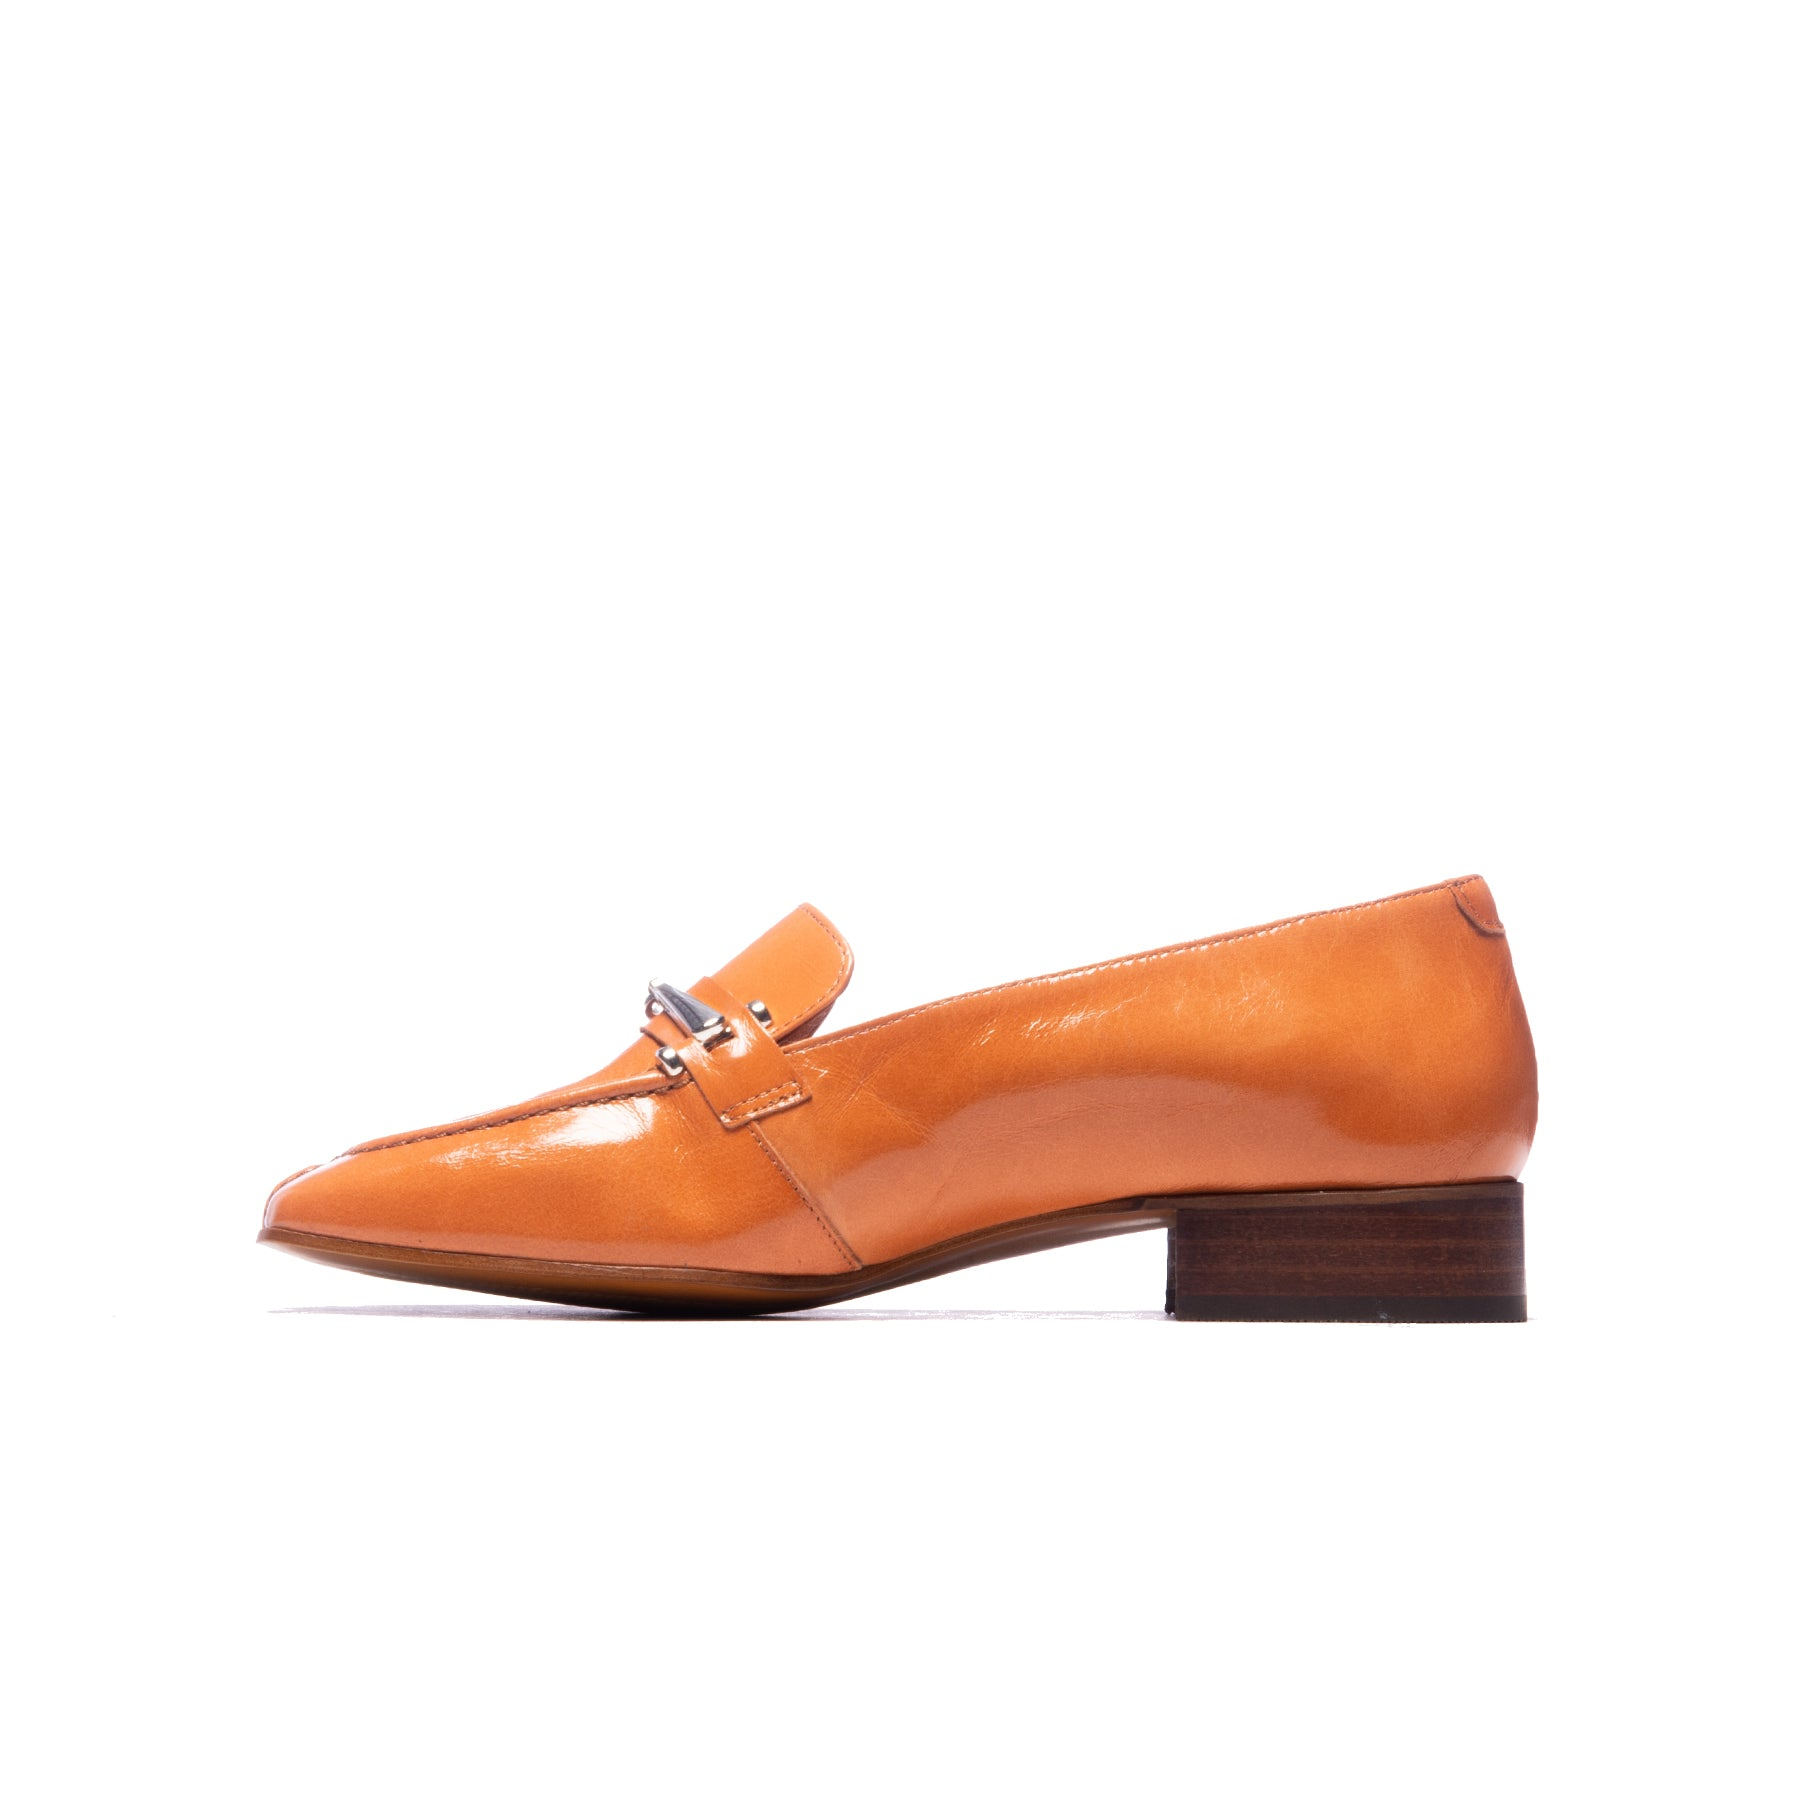 Marbella Burnt Orange Leather